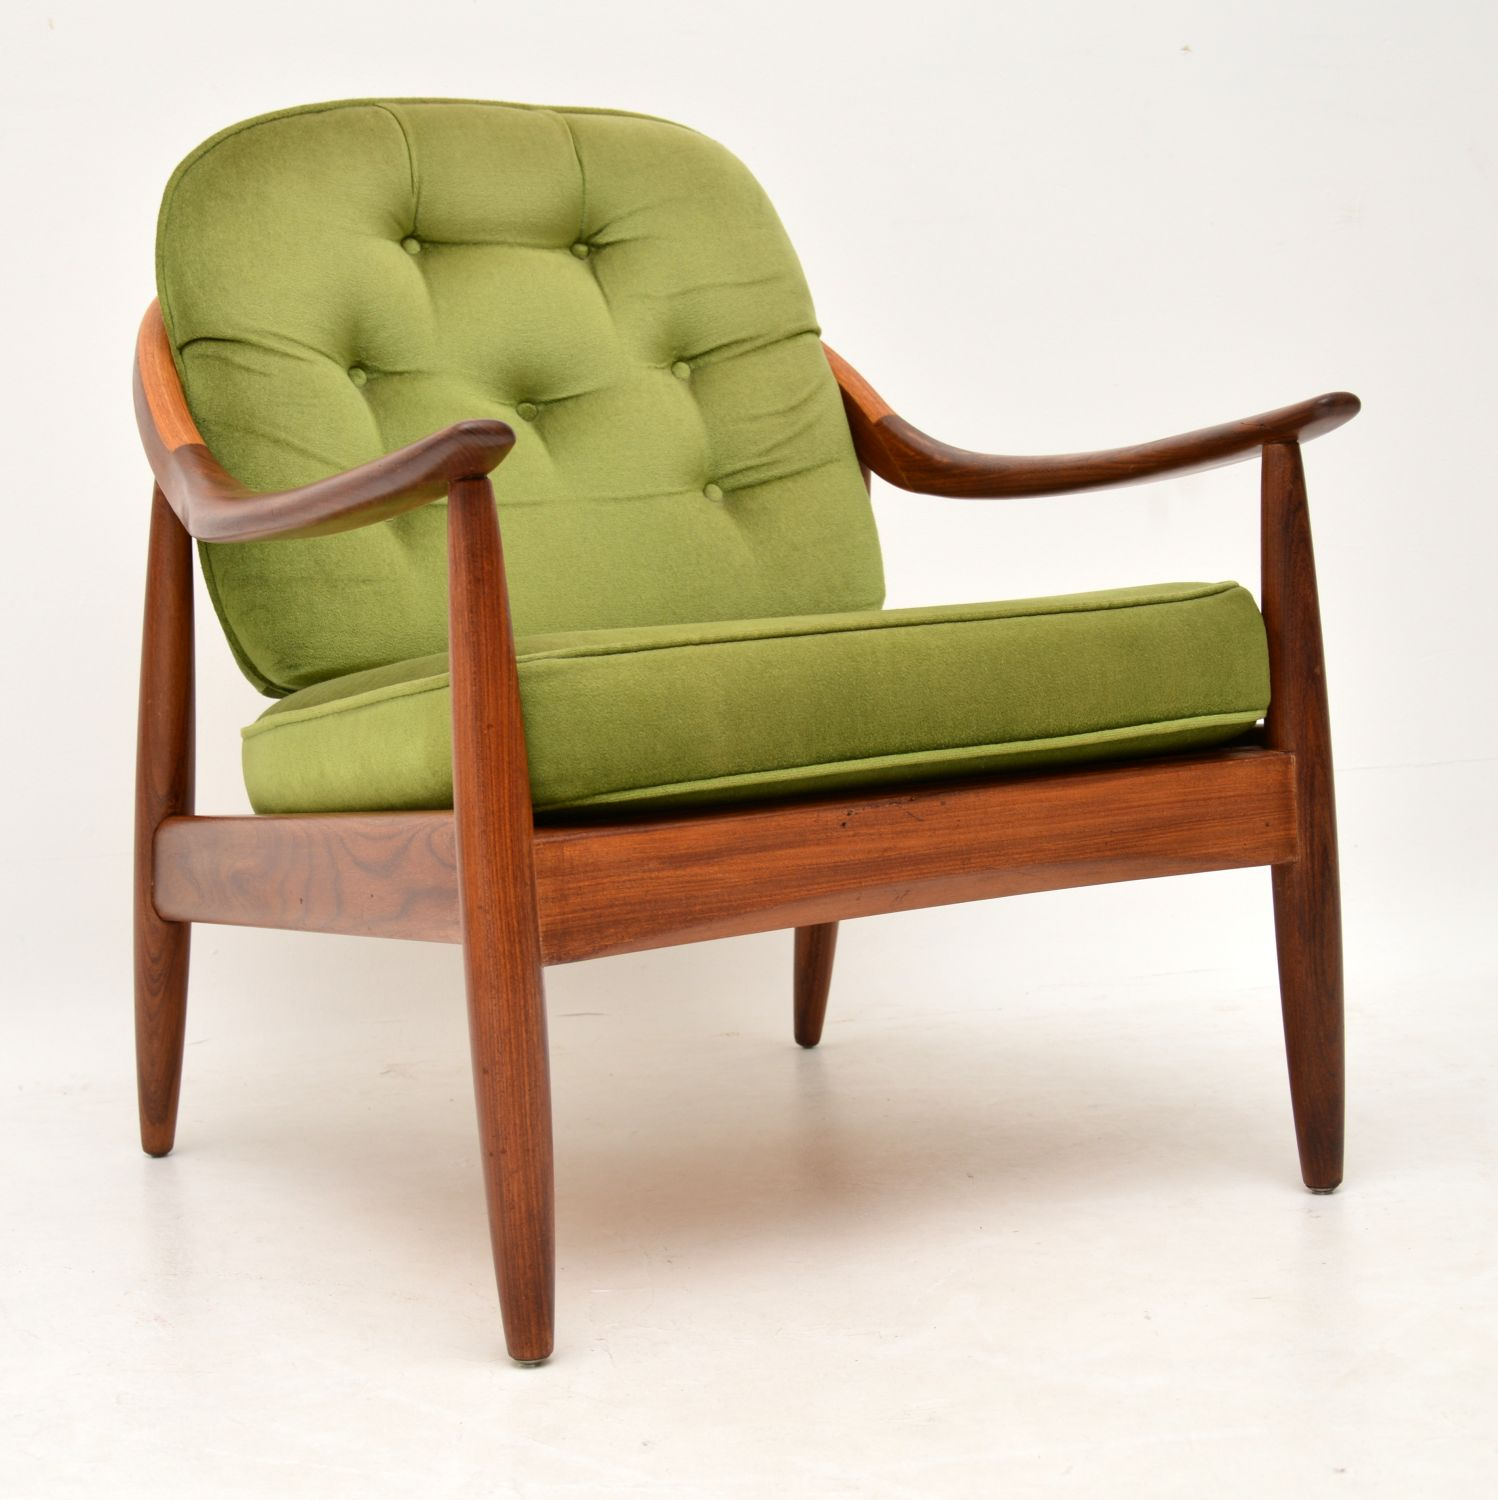 retro vintage teak afromosia armchair by greaves and thomas